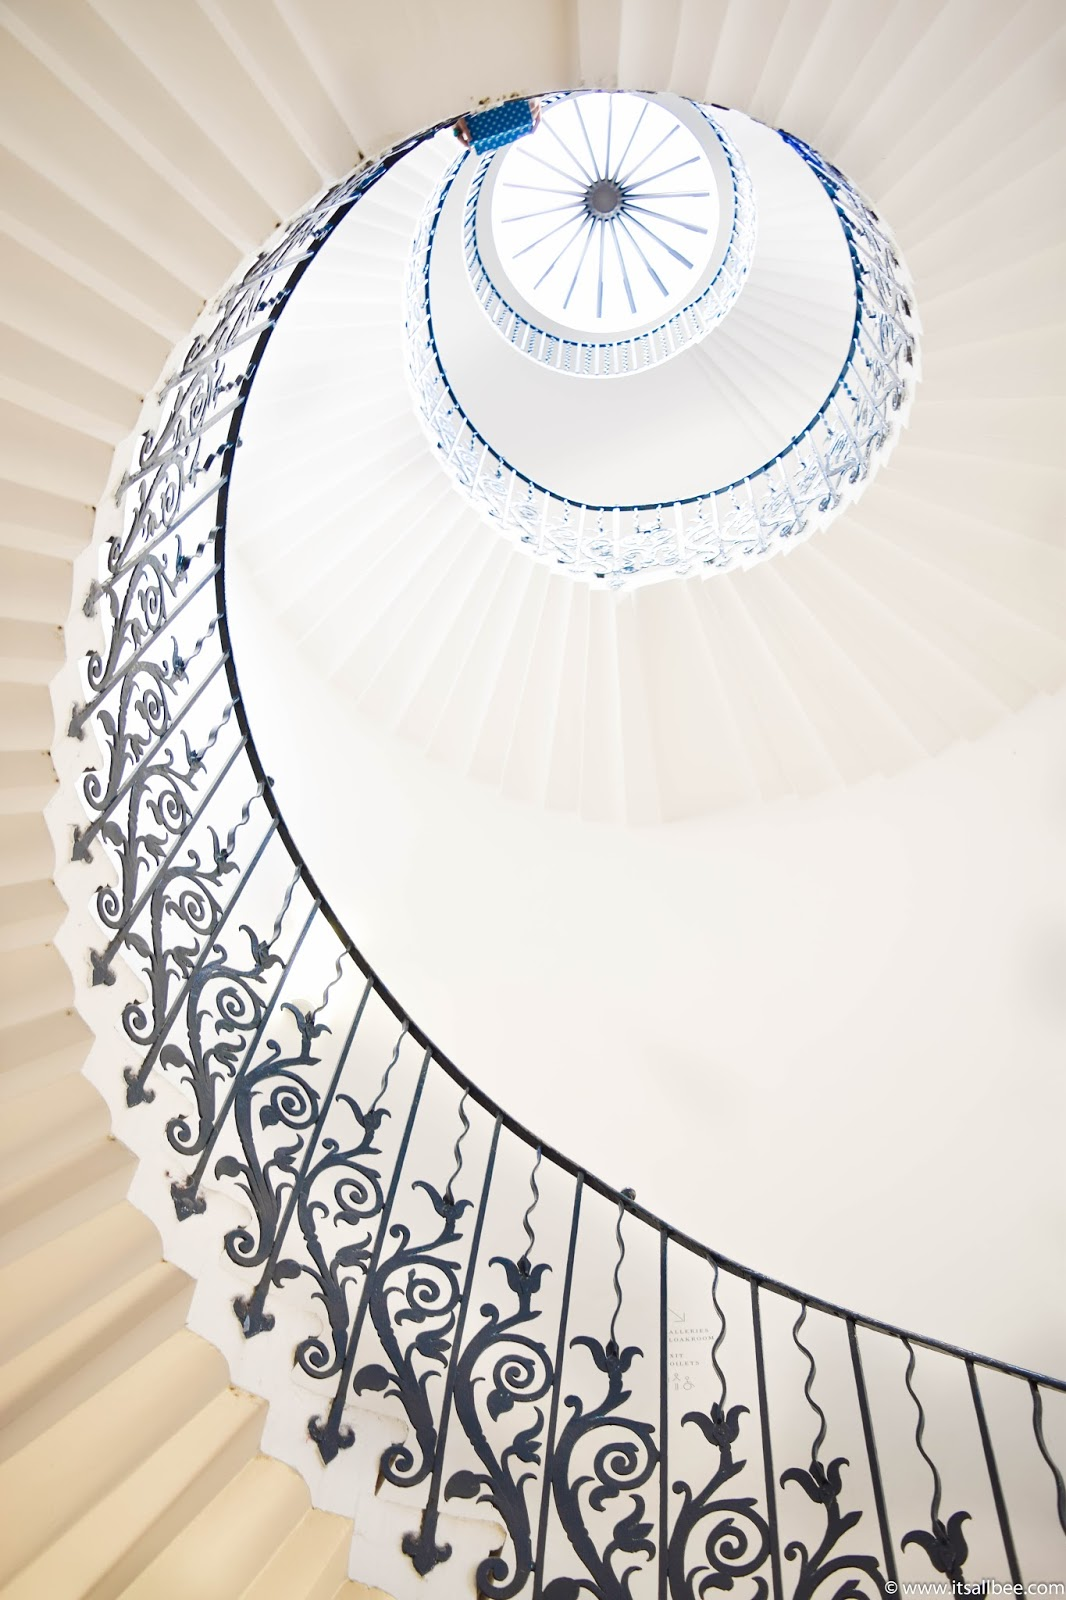 tulip staircase greenwich, tulip stairs london, tulip stairs queen's house